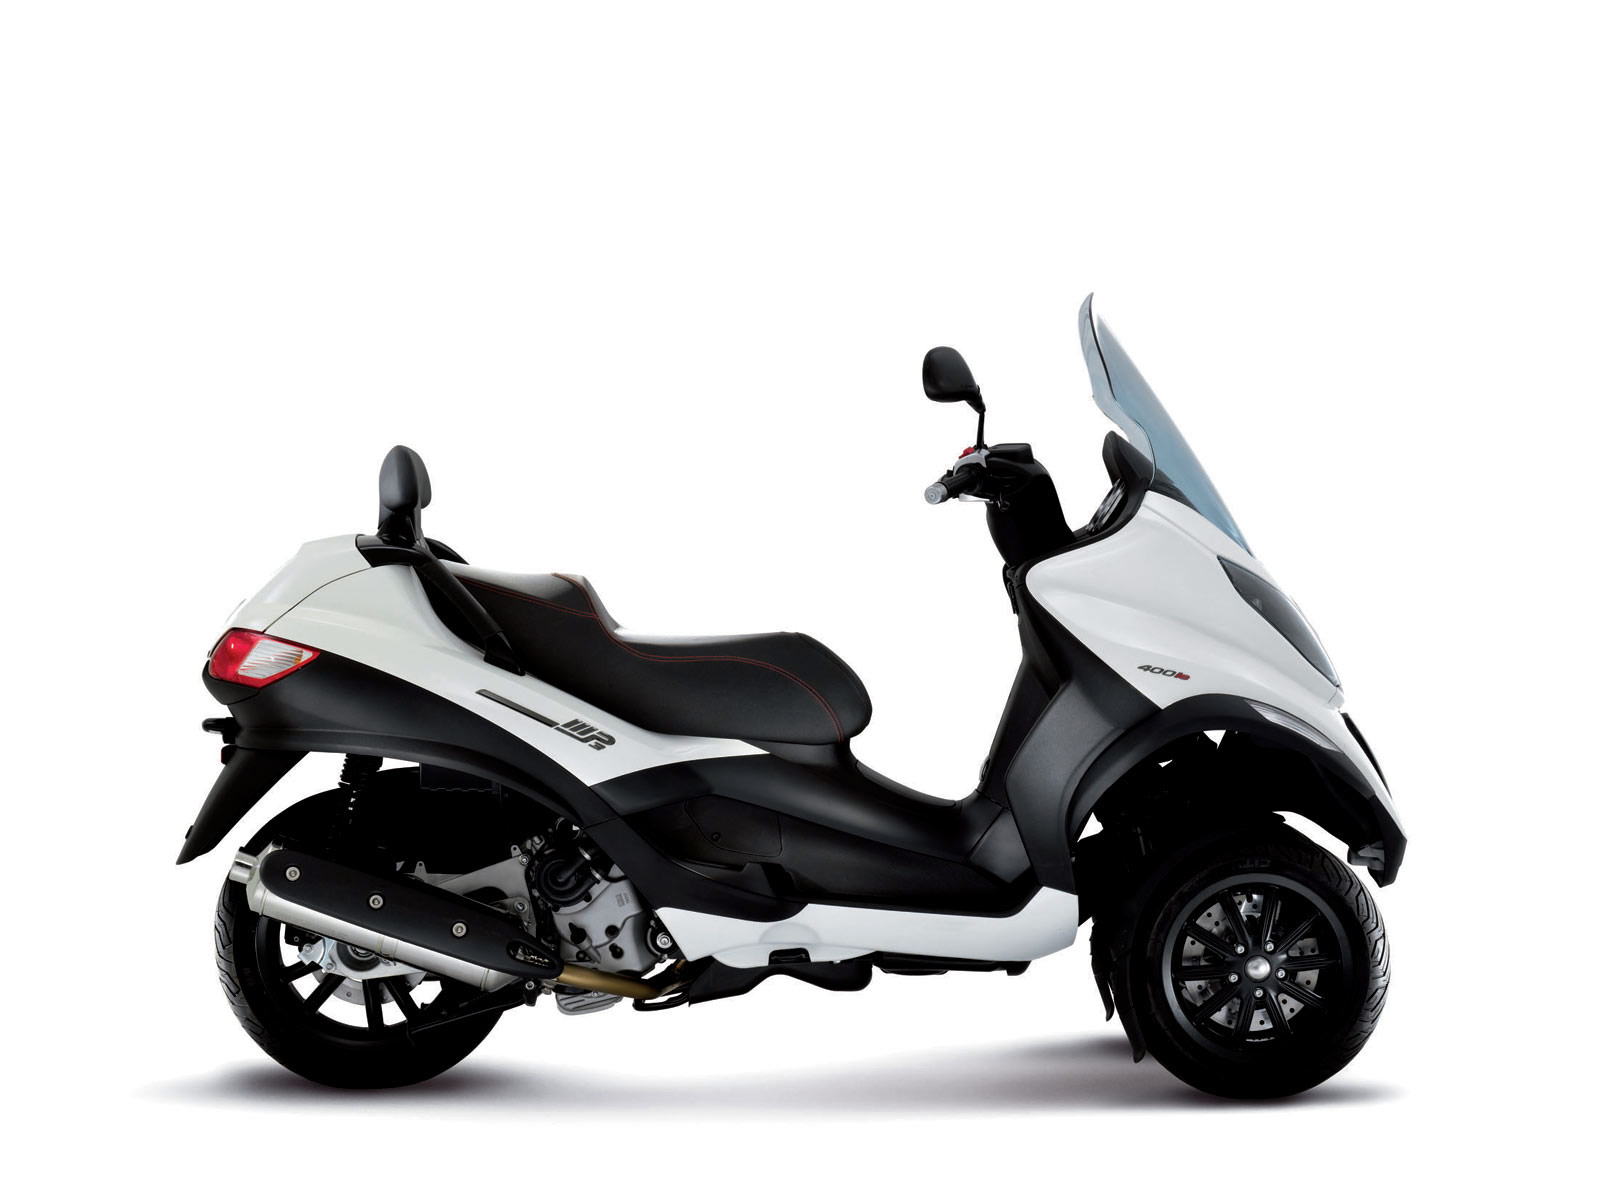 2011 piaggio mp3 400ie sport scooter pictures. Black Bedroom Furniture Sets. Home Design Ideas